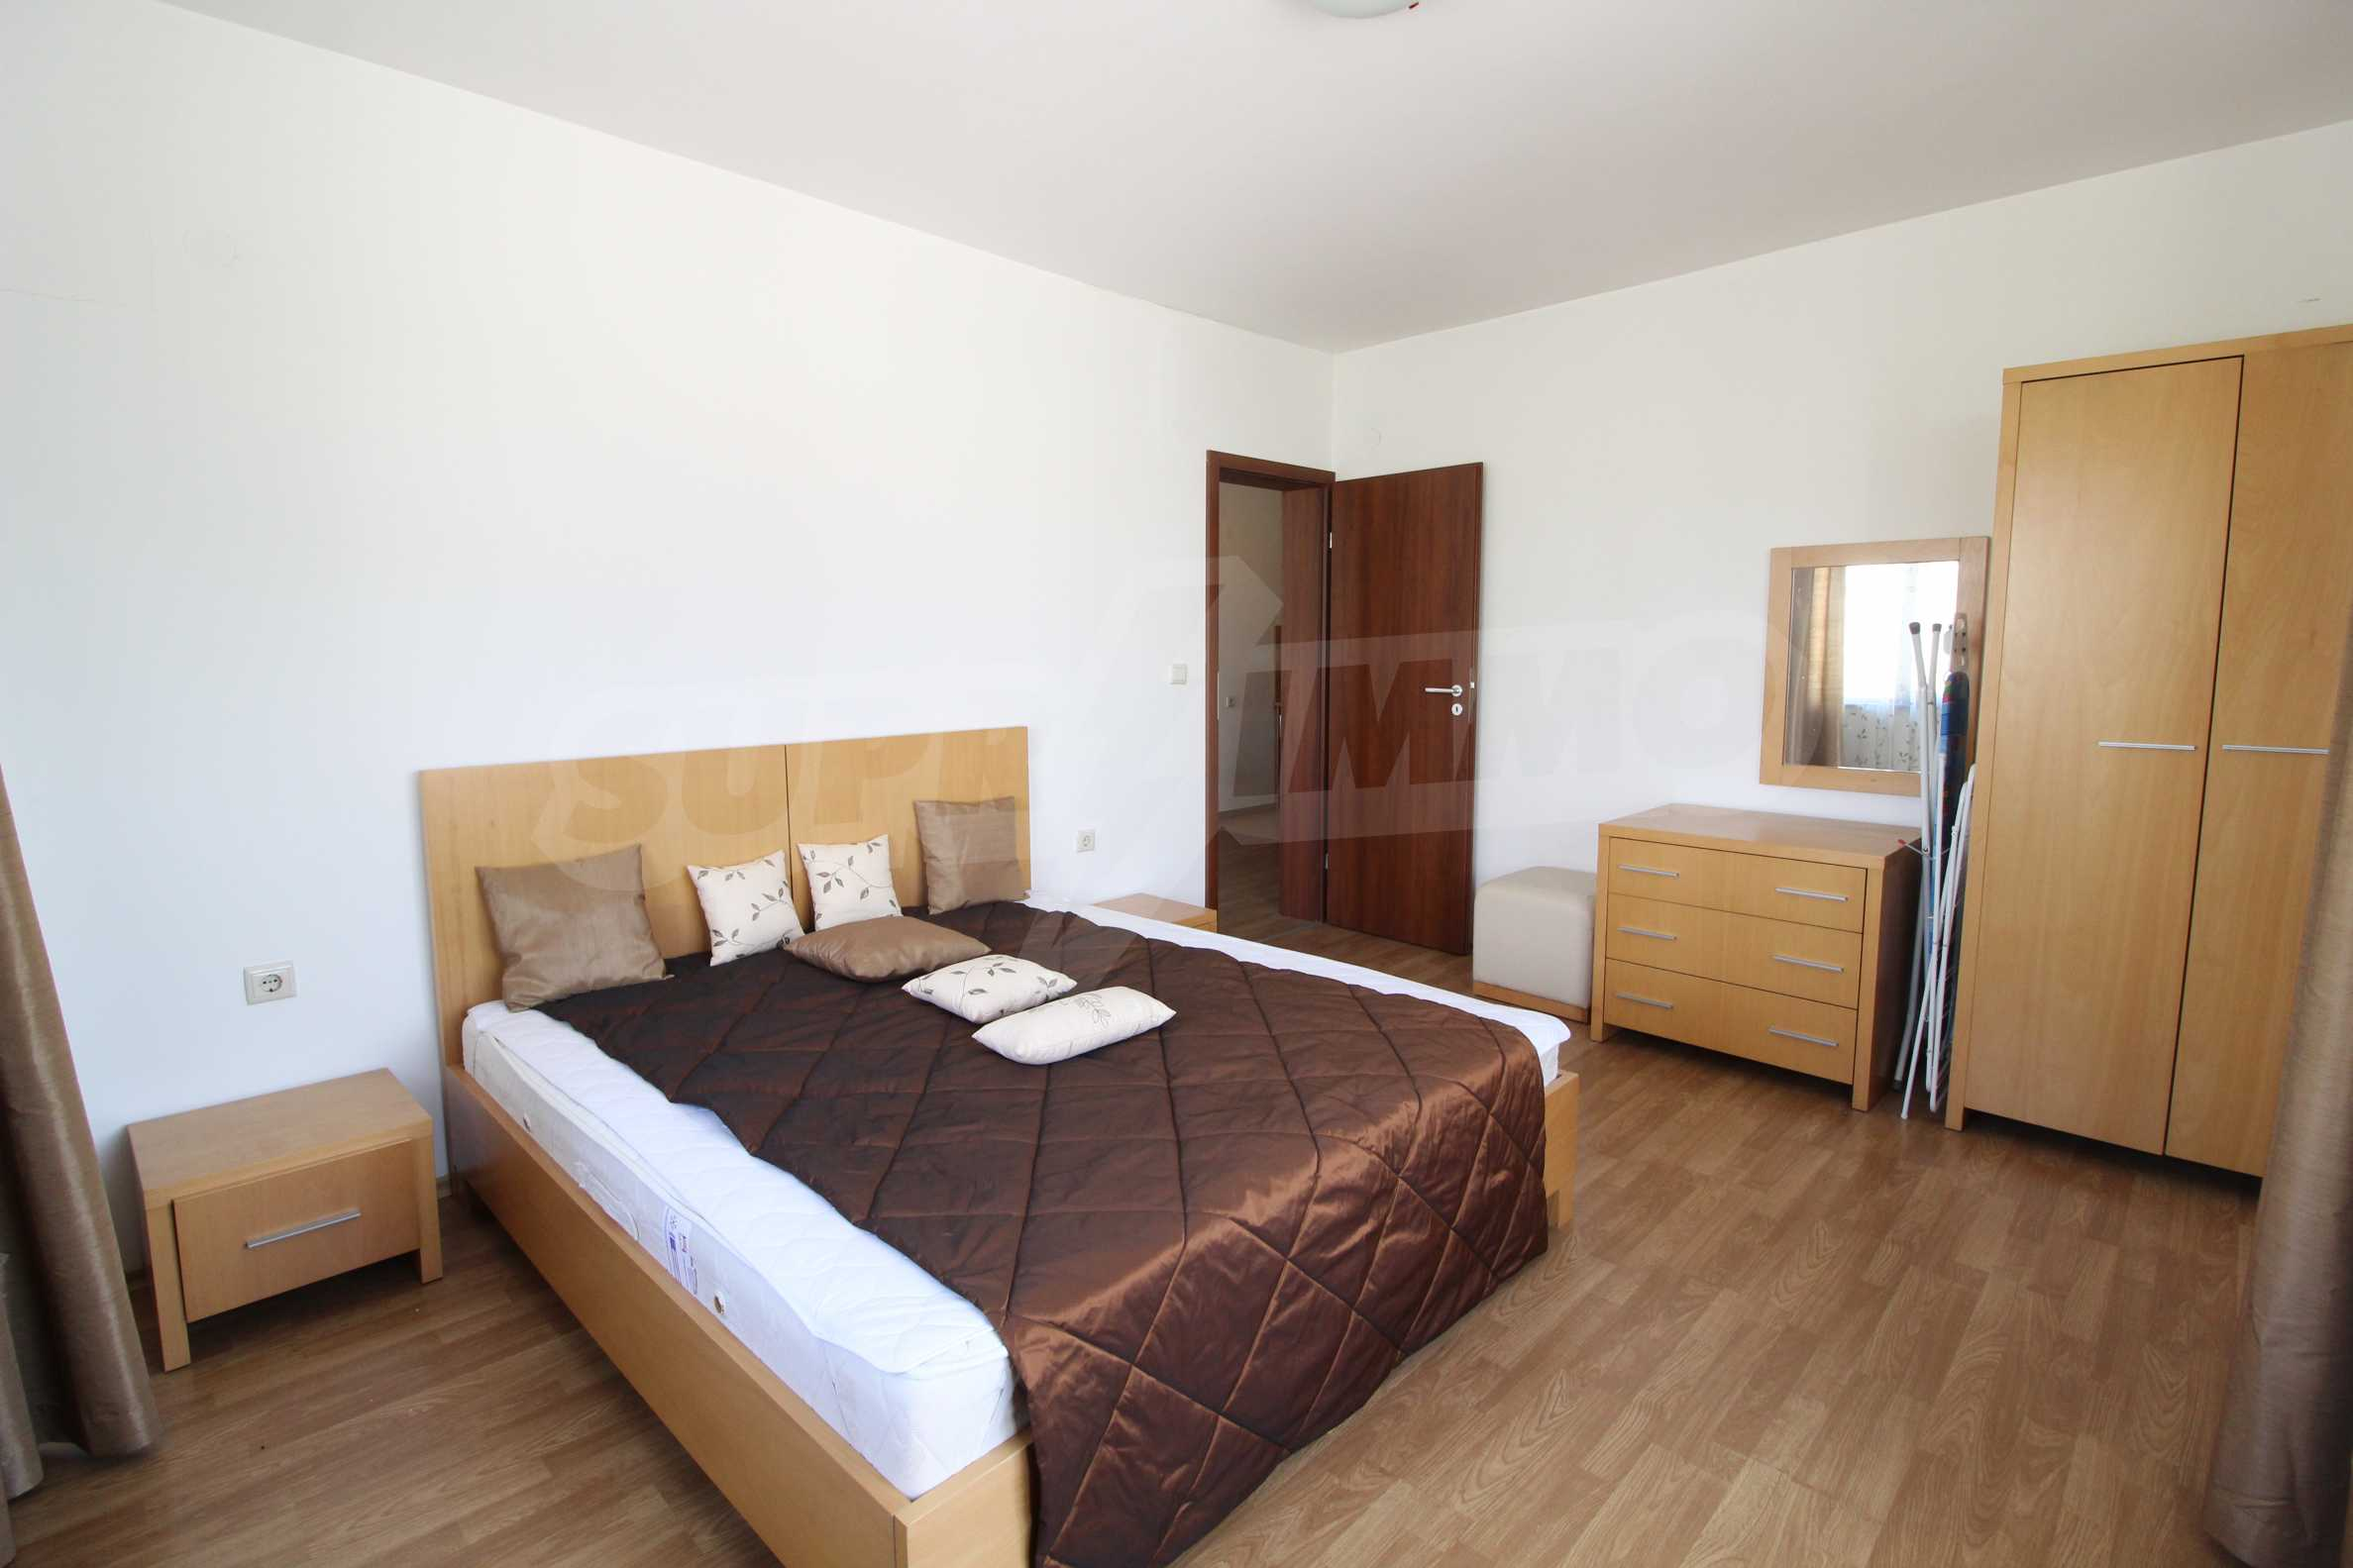 Furnished two-bedroom apartment located in Top Lodge complex, just meters from the ski lift in Bansko 4